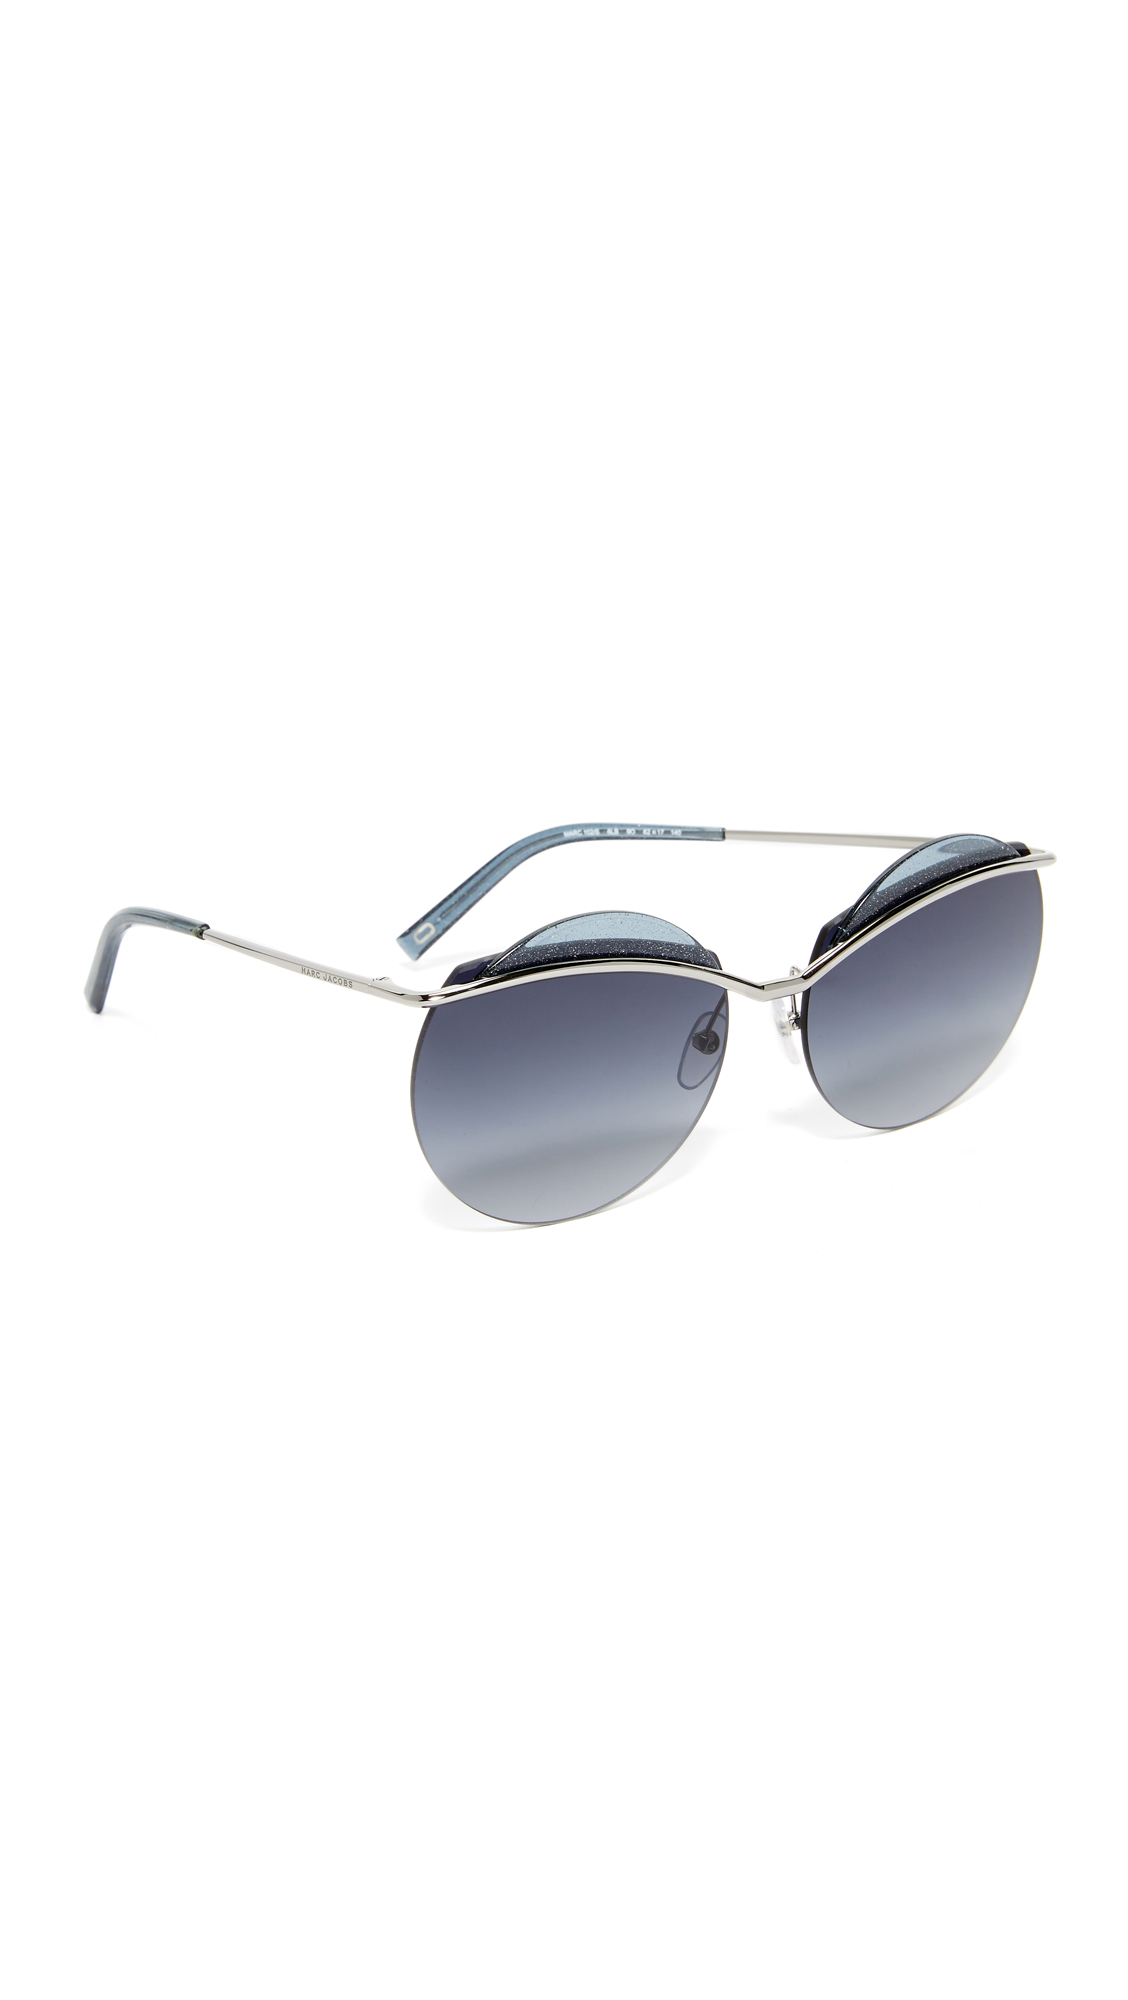 Futuristic Marc Jacobs sunglasses with a curving bridge and glittery trim. Acetate tips. Gradient lenses. Hardshell case and cleaning cloth included. Round frame. Non polarized lenses. Imported, China. Measurements Width: 6in / 15cm Height: 2.25in / 6cm Lens